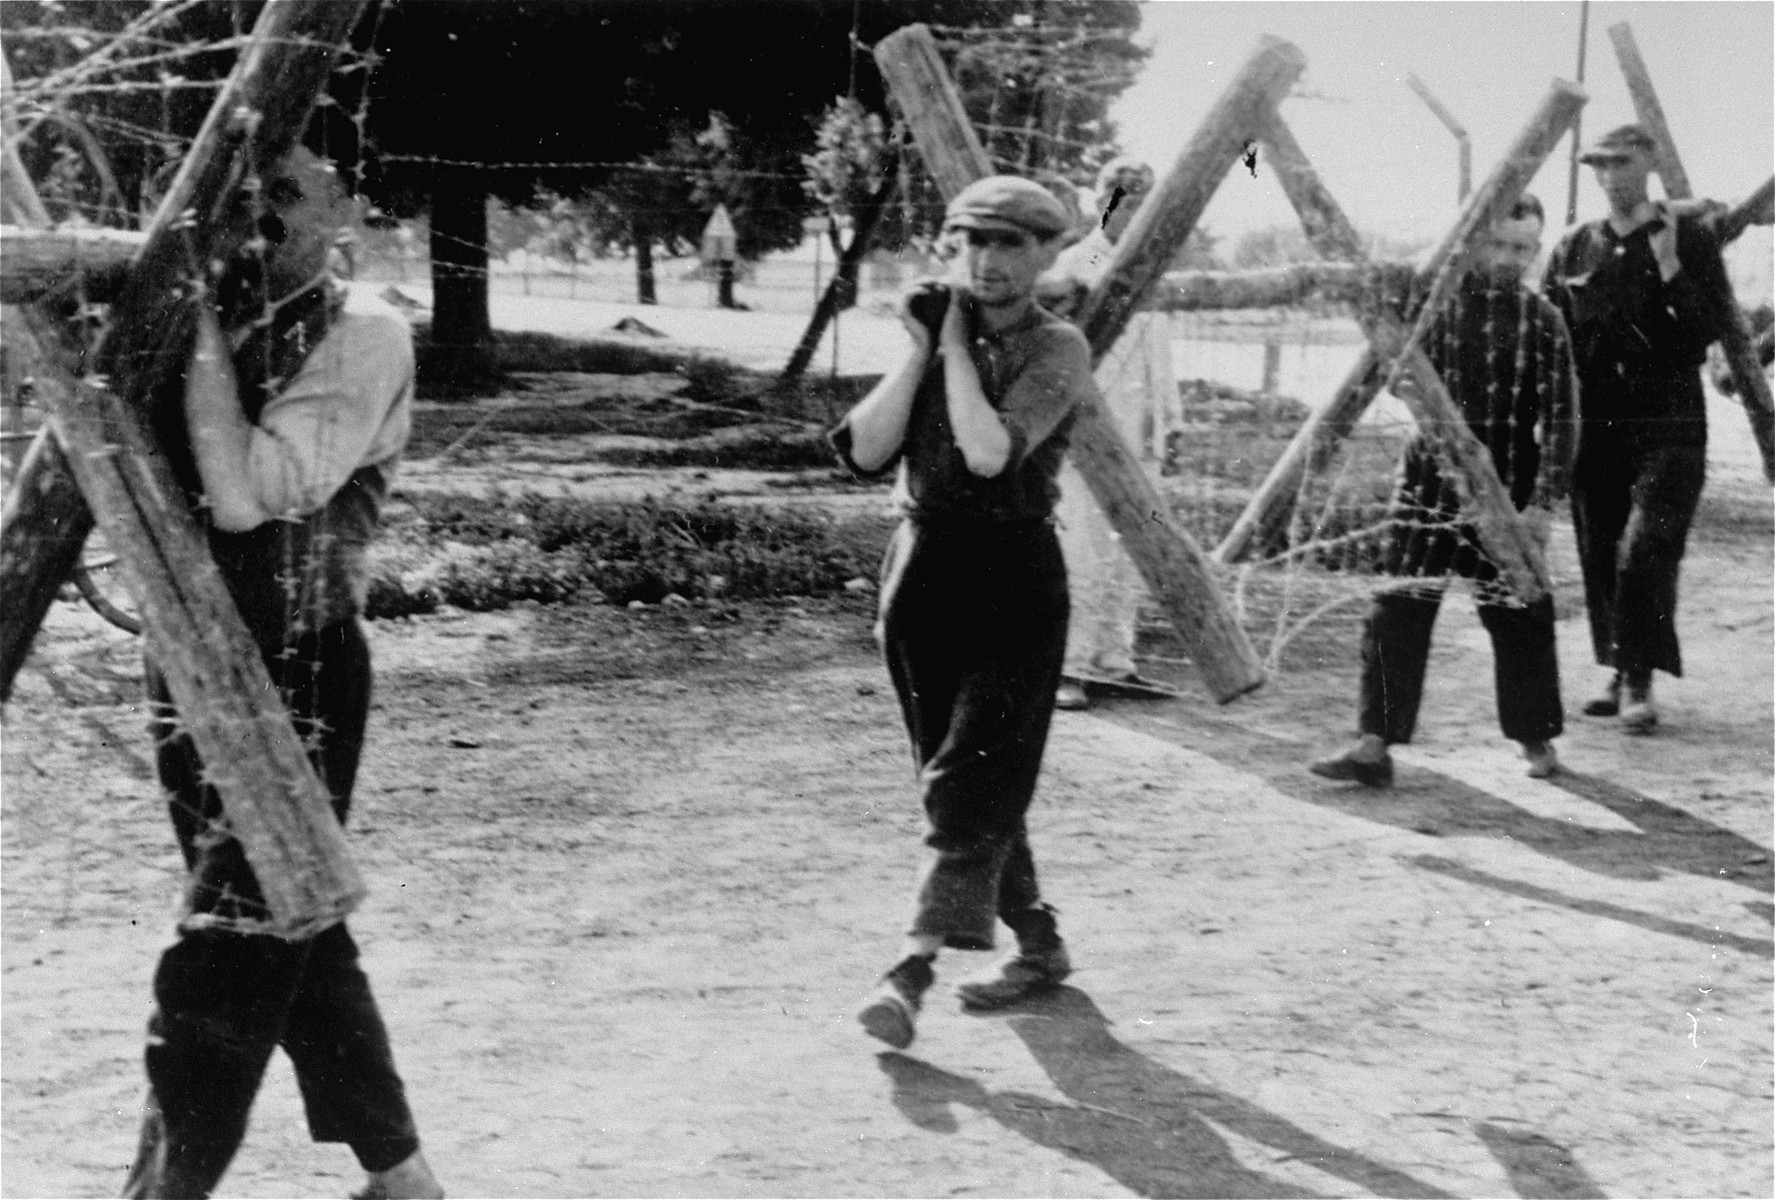 Jewish men at forced labor carrying sections of barbed wire fencing along a road in Konskowola.